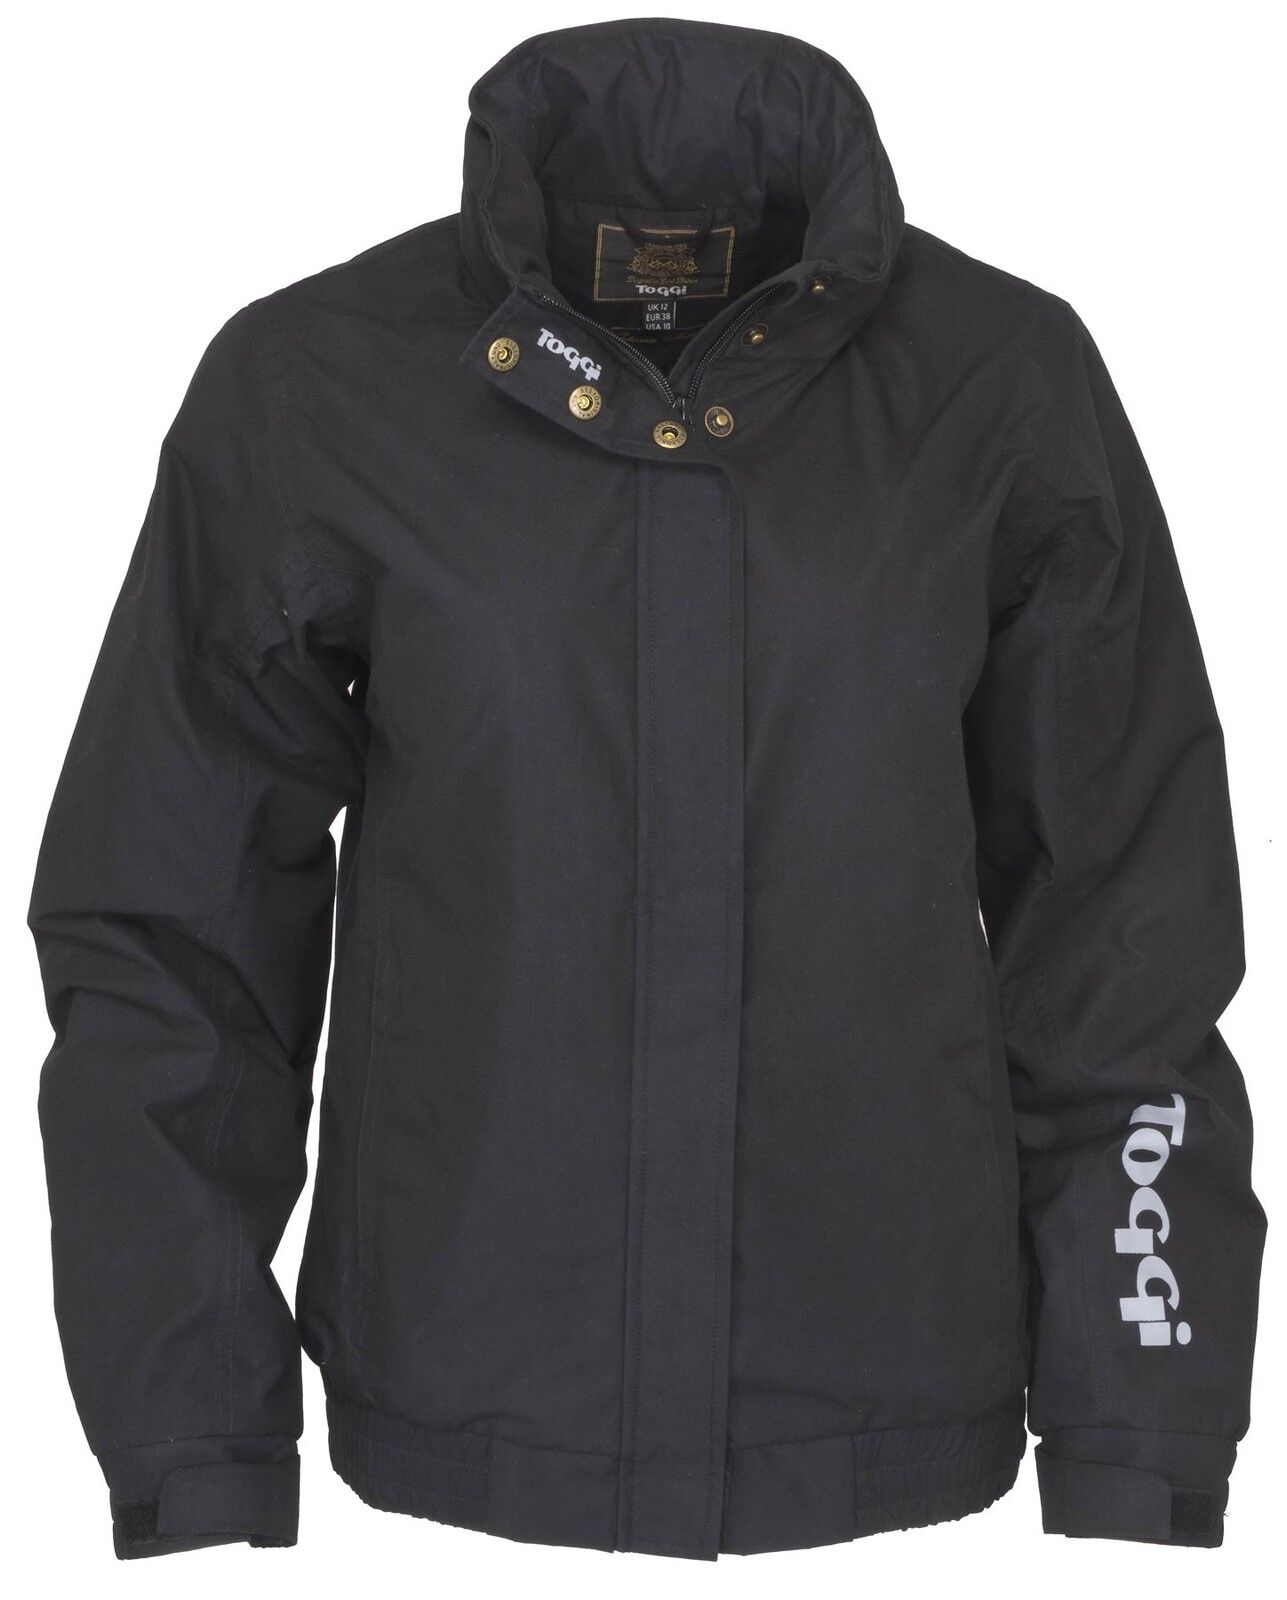 Toggi atley Donna Equine Country Walking Impermeabili Equitazione Giacca Ripstop